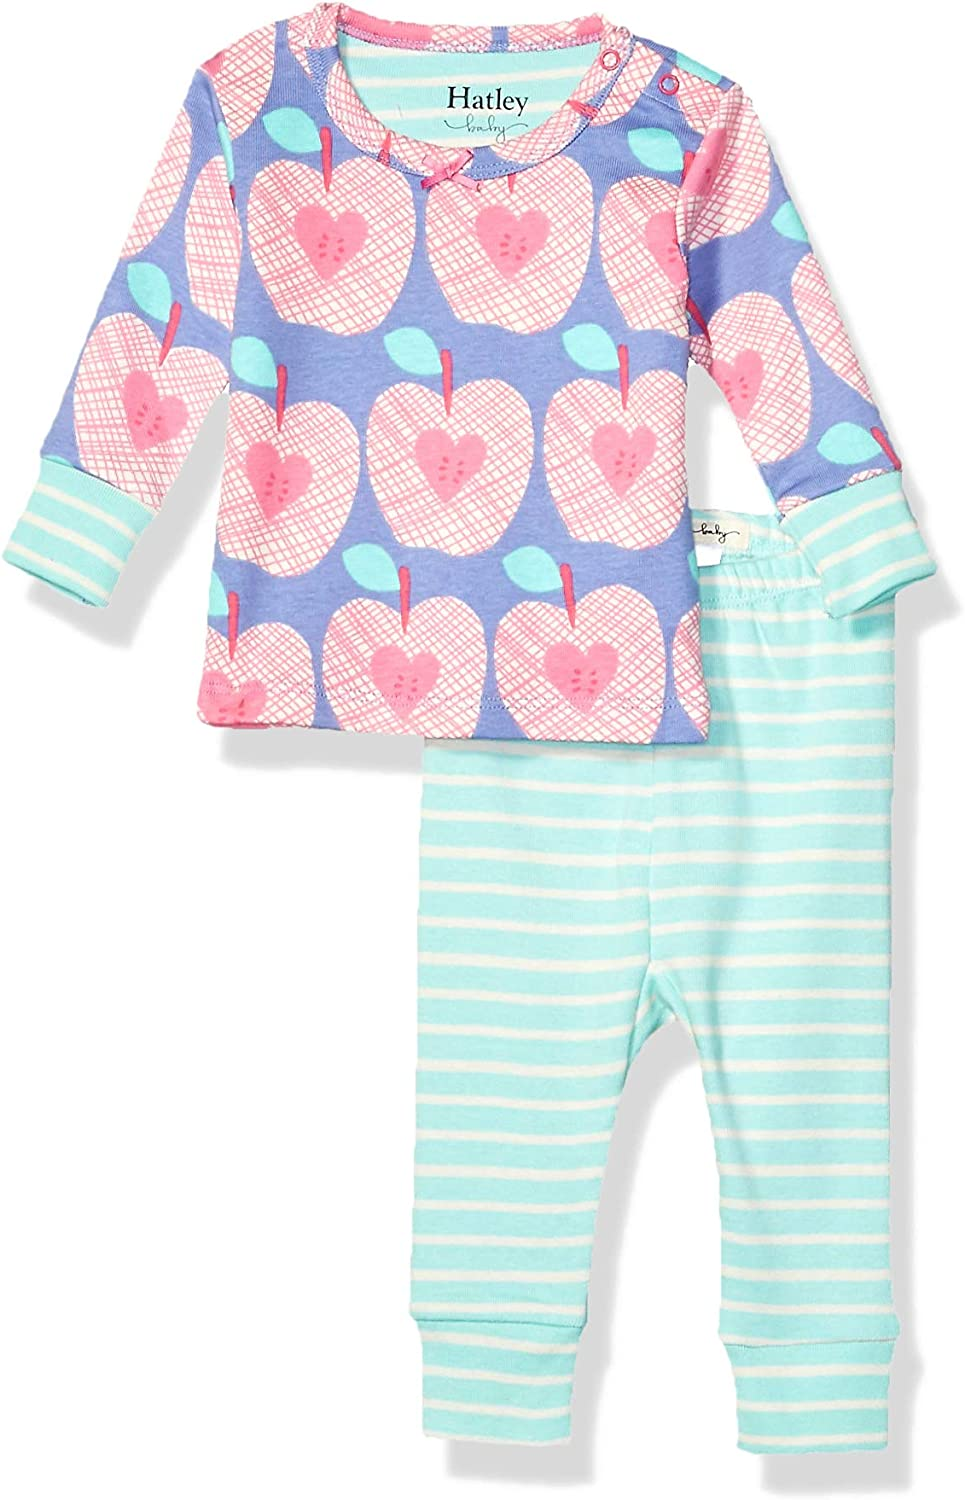 Hatley Baby Girls' Organic Cotton Long Sleeve Mini Pajama Sets